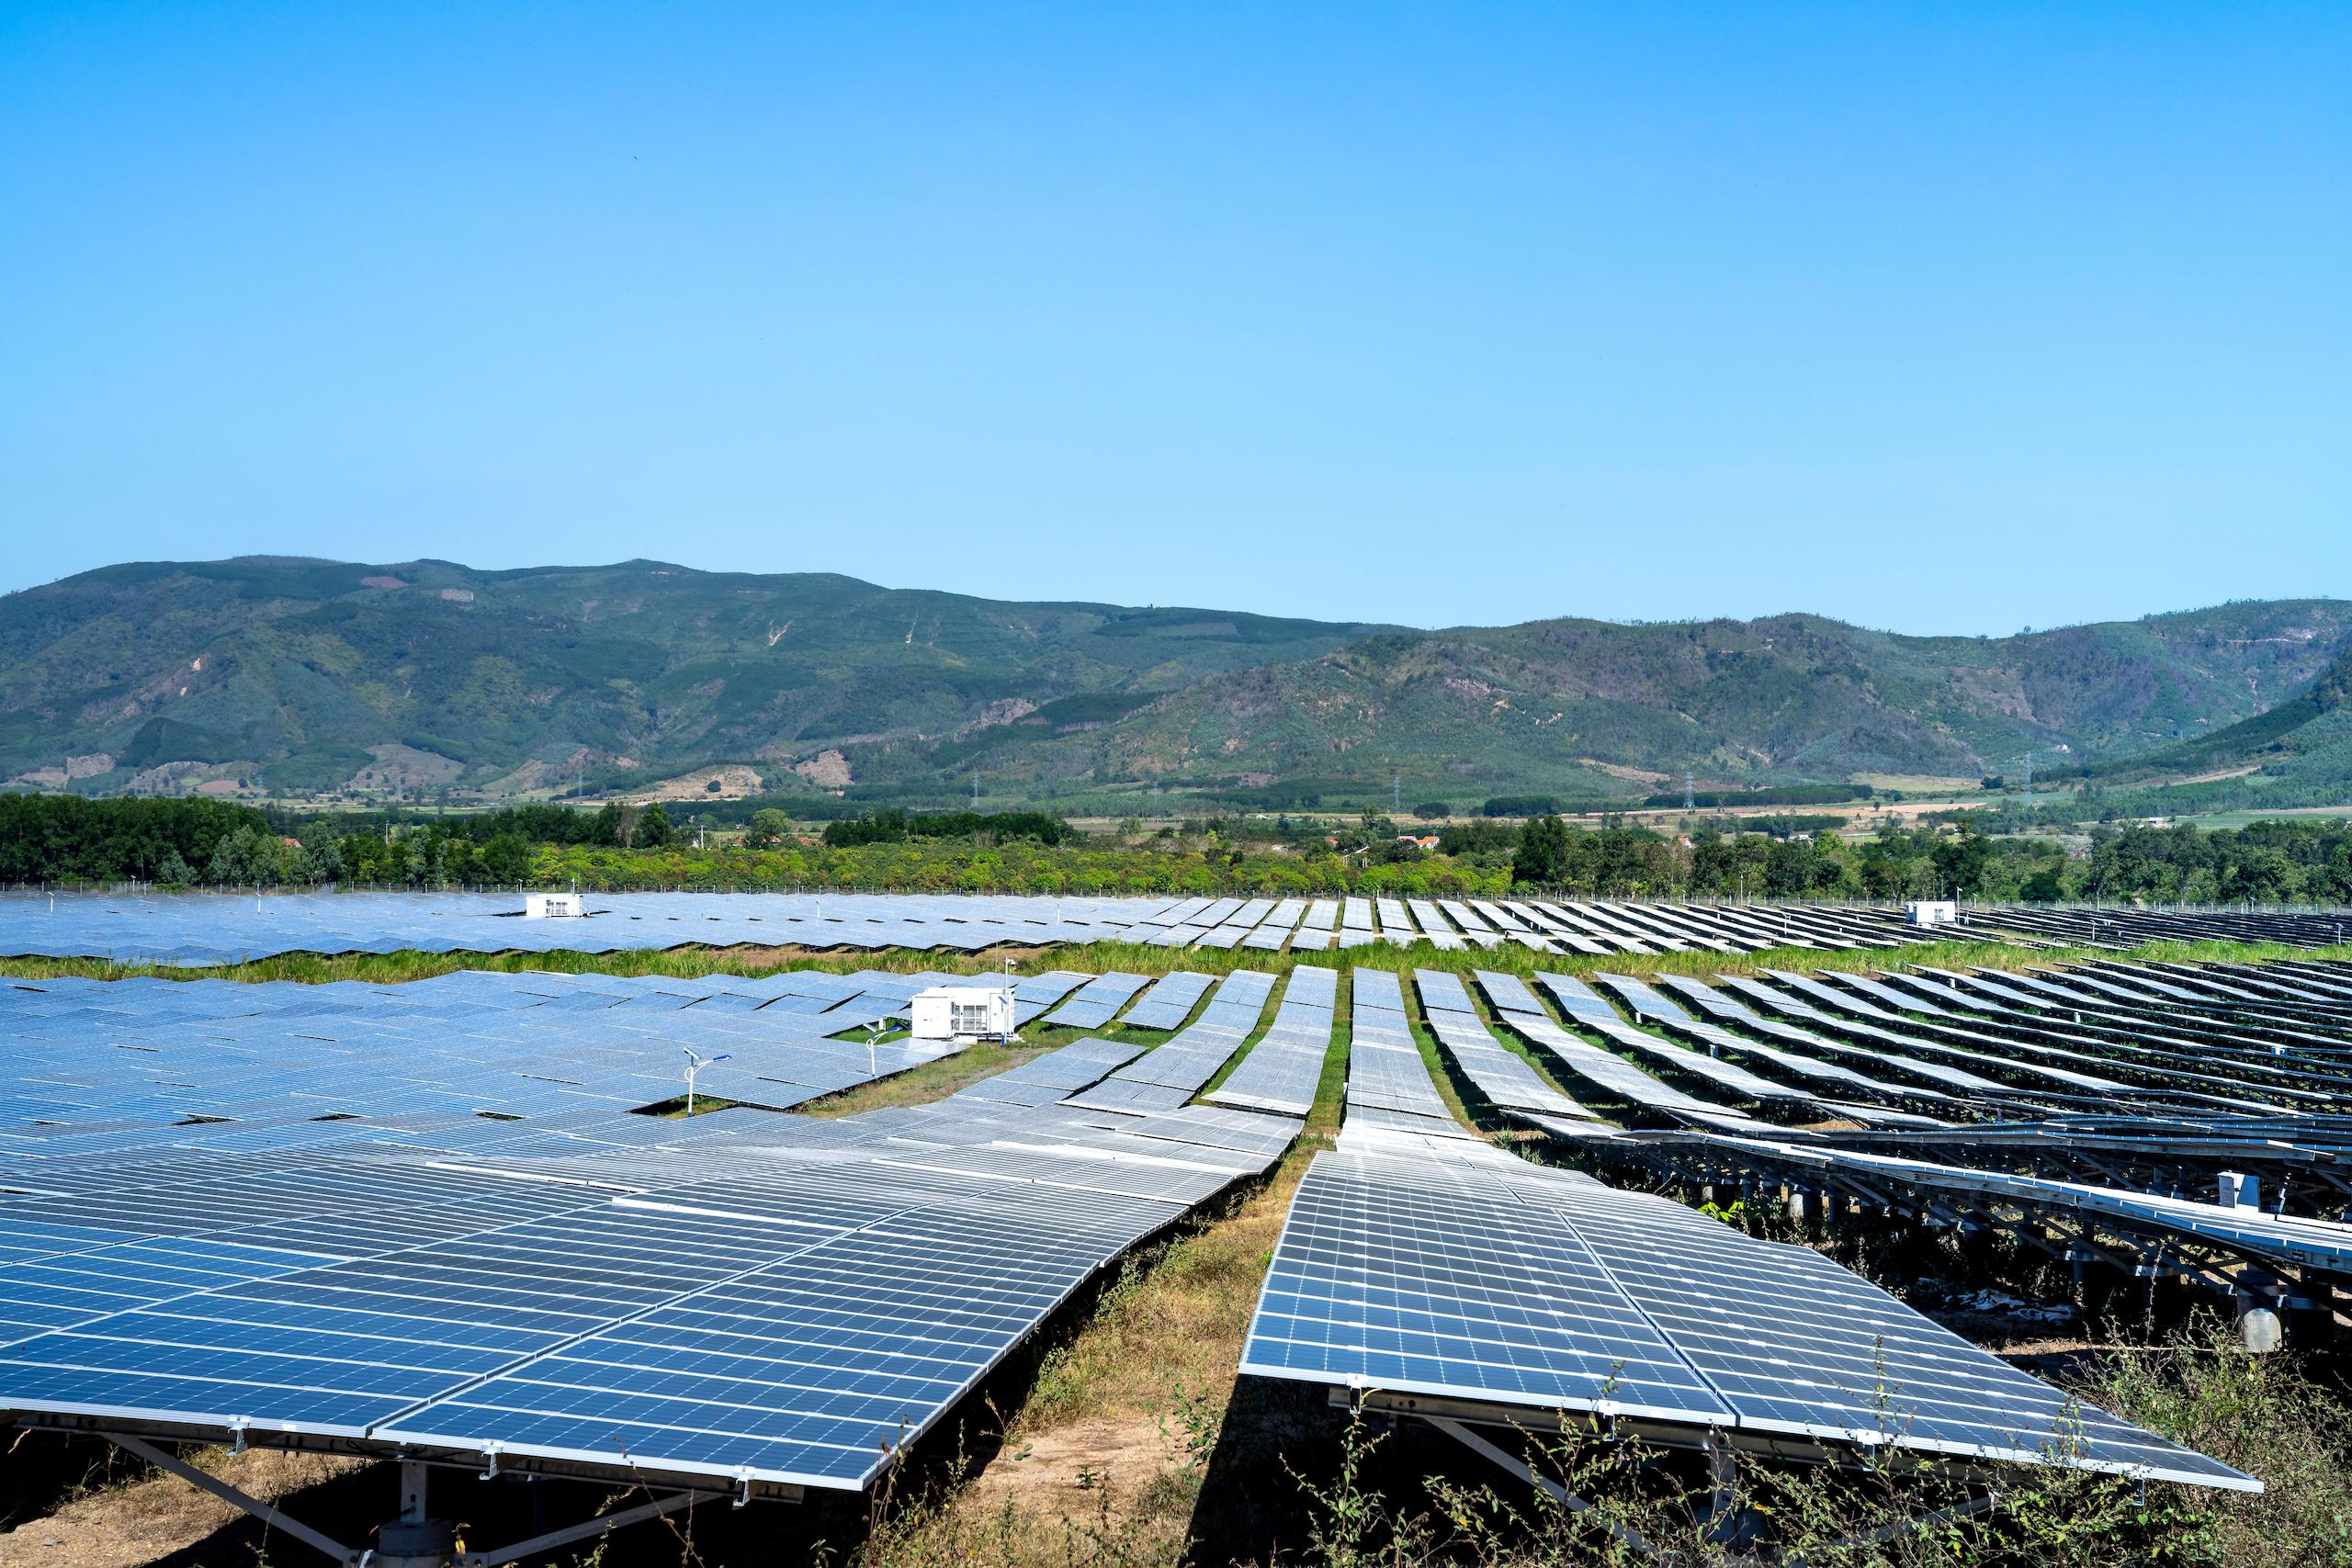 Solar energy in Vietnam has grown rapidly since 2018, supported by Chinese finance and technology (Image: Alamy)